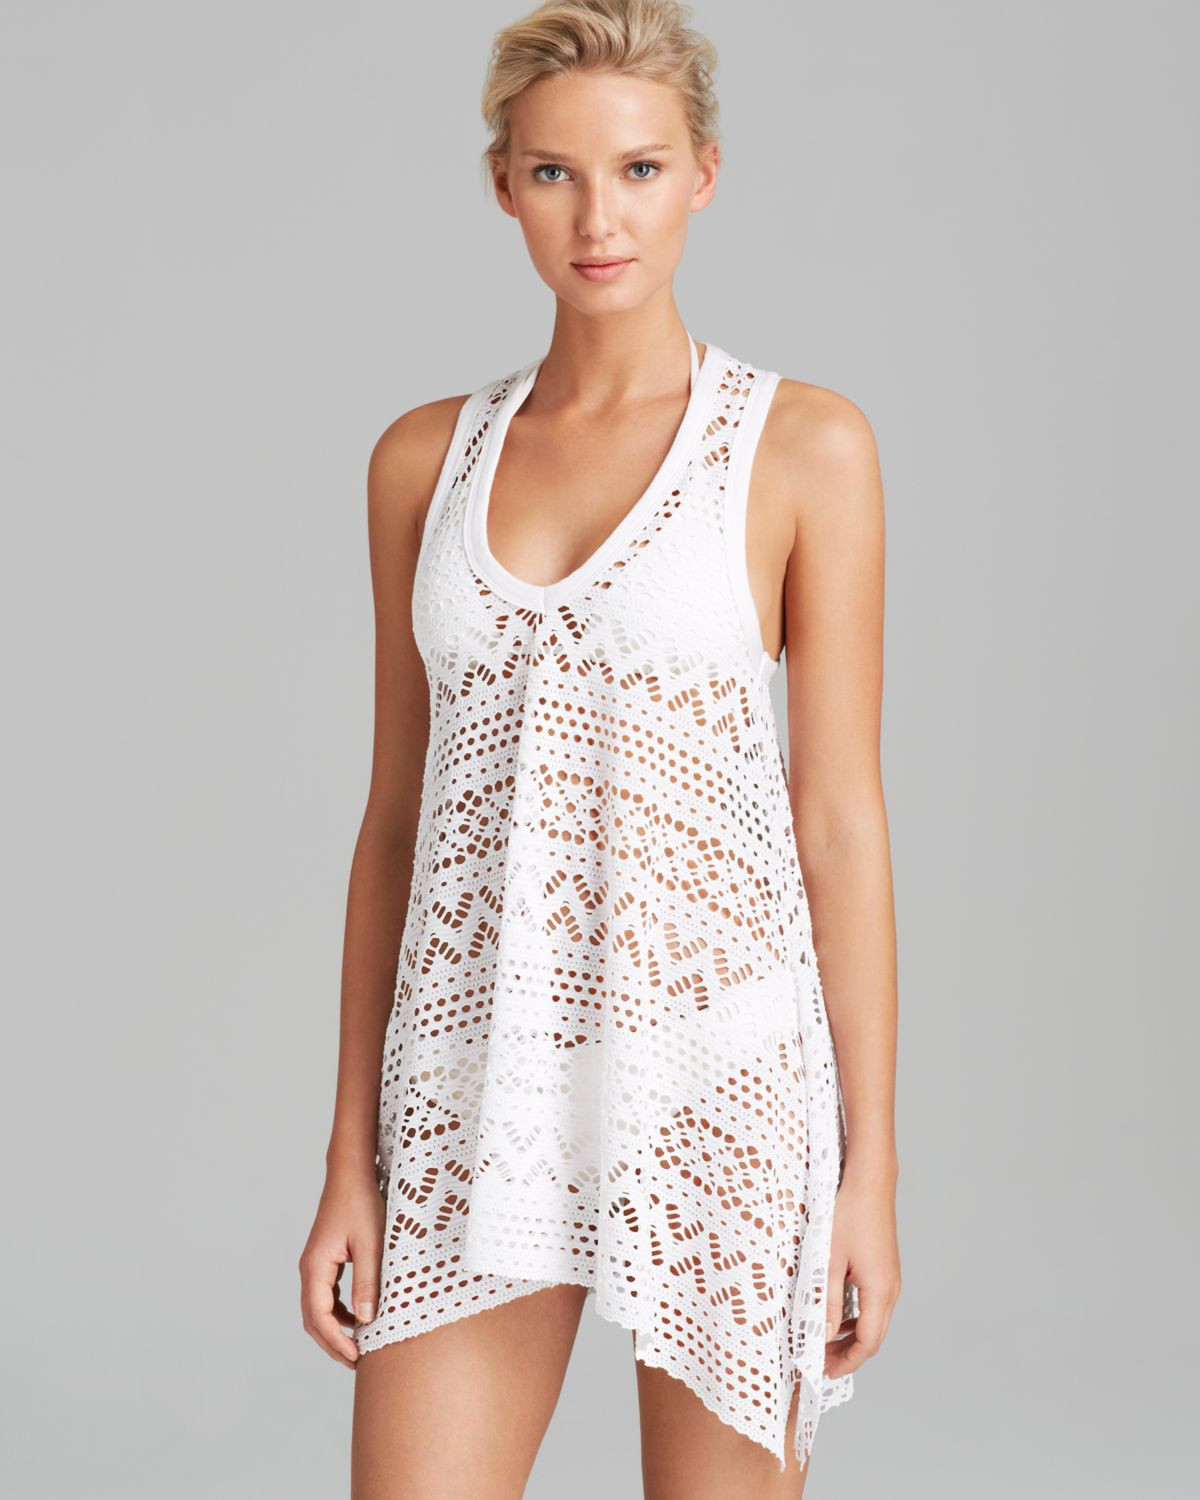 Crochet Swim Suit Elegant Lyst Robin Piccone Penelope Crochet Dress Swim Cover Up Of Marvelous 44 Models Crochet Swim Suit